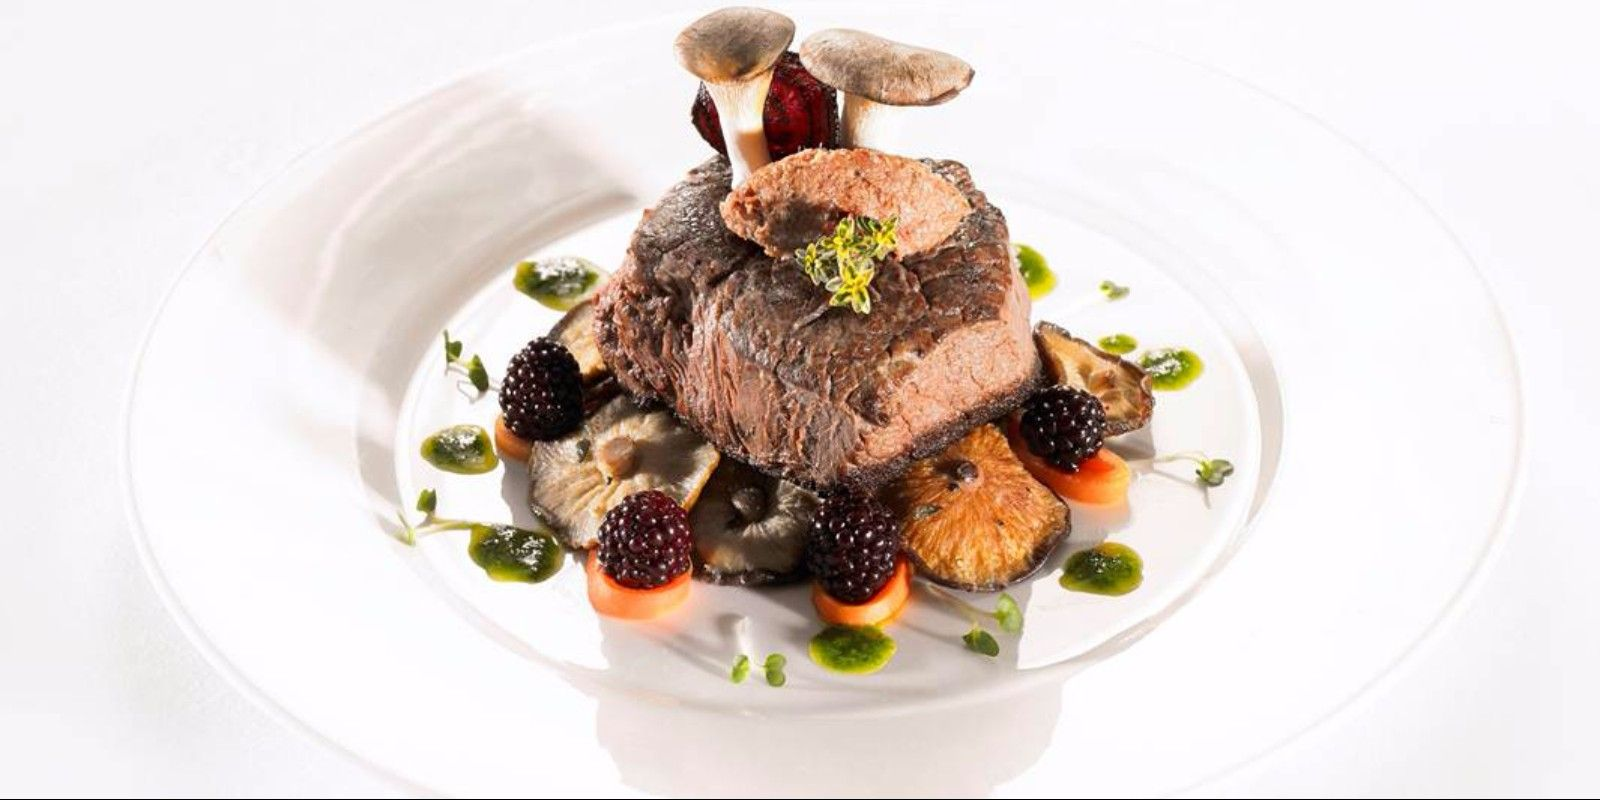 4 Award Winning Restaurant Beef Dish Faithlegg